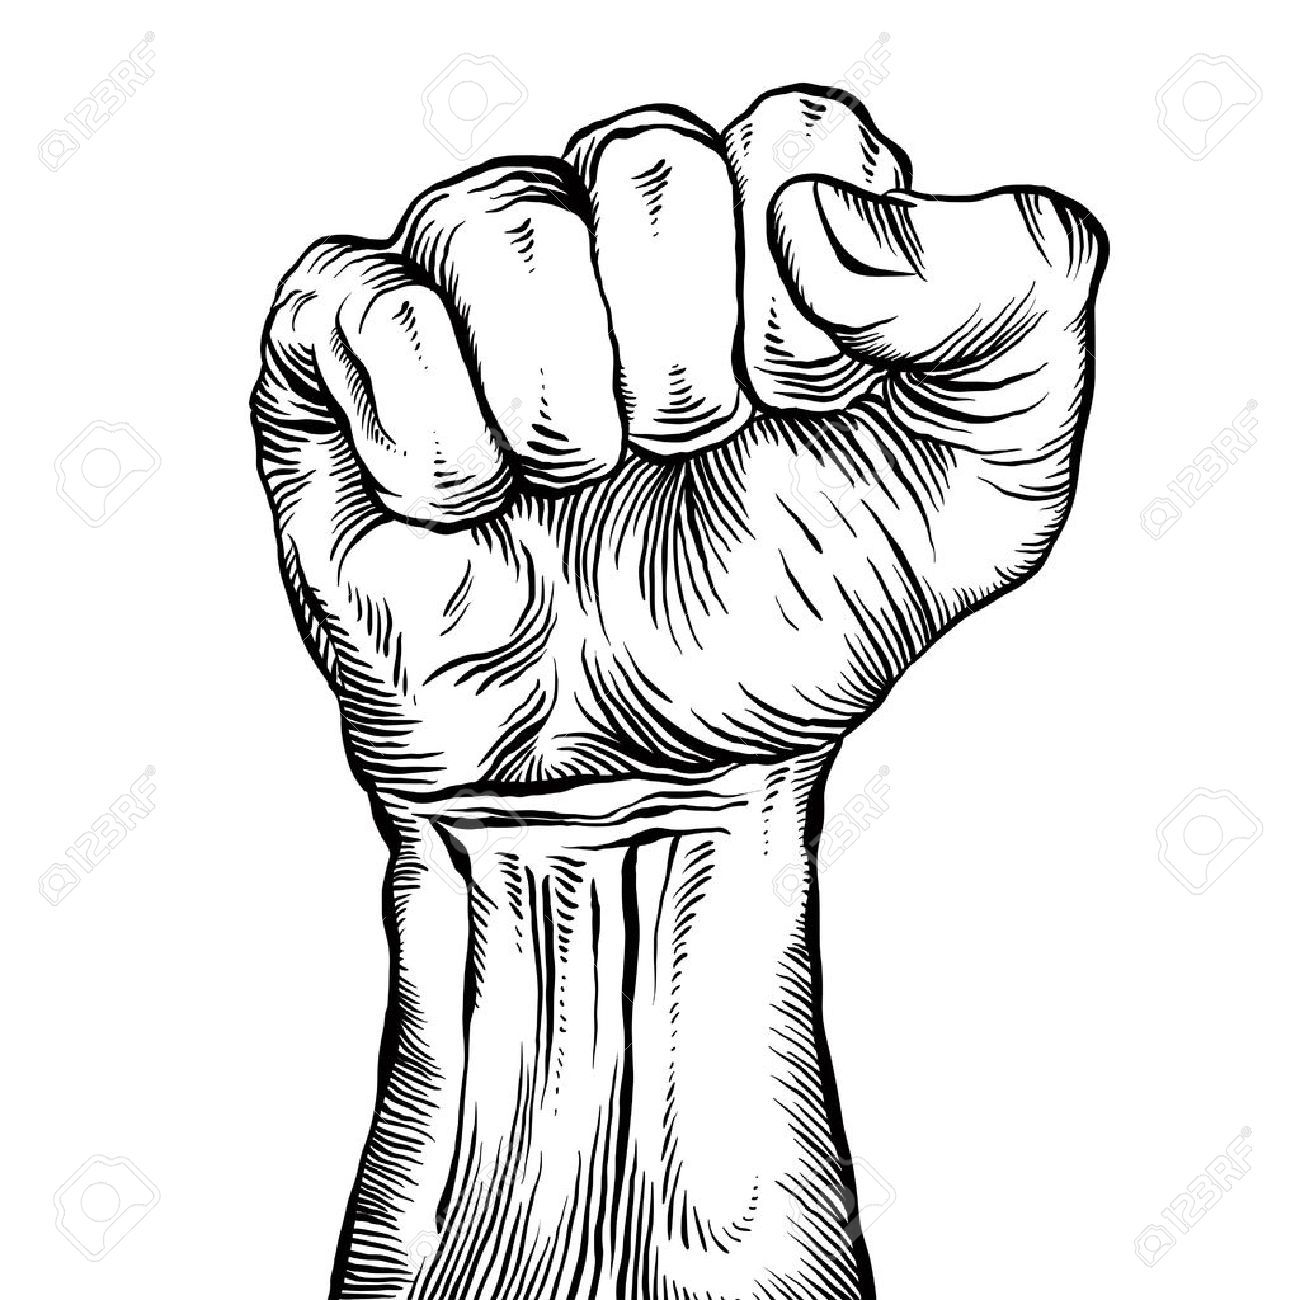 1300x1300 fist how to draw hands, fist tattoo, drawings